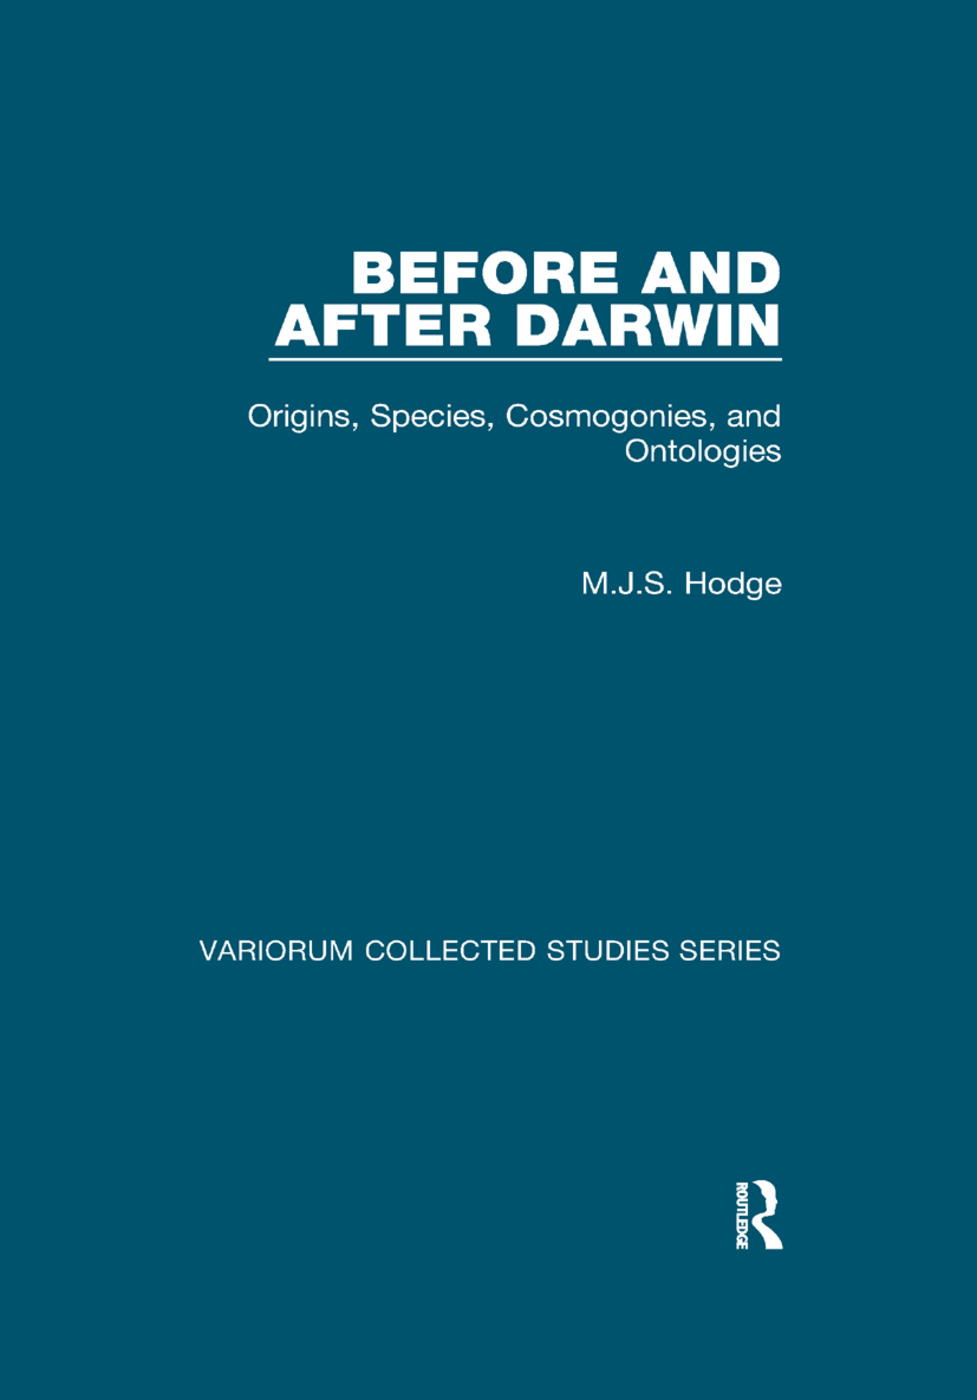 Before and After Darwin: Origins, Species, Cosmogonies, and Ontologies book cover